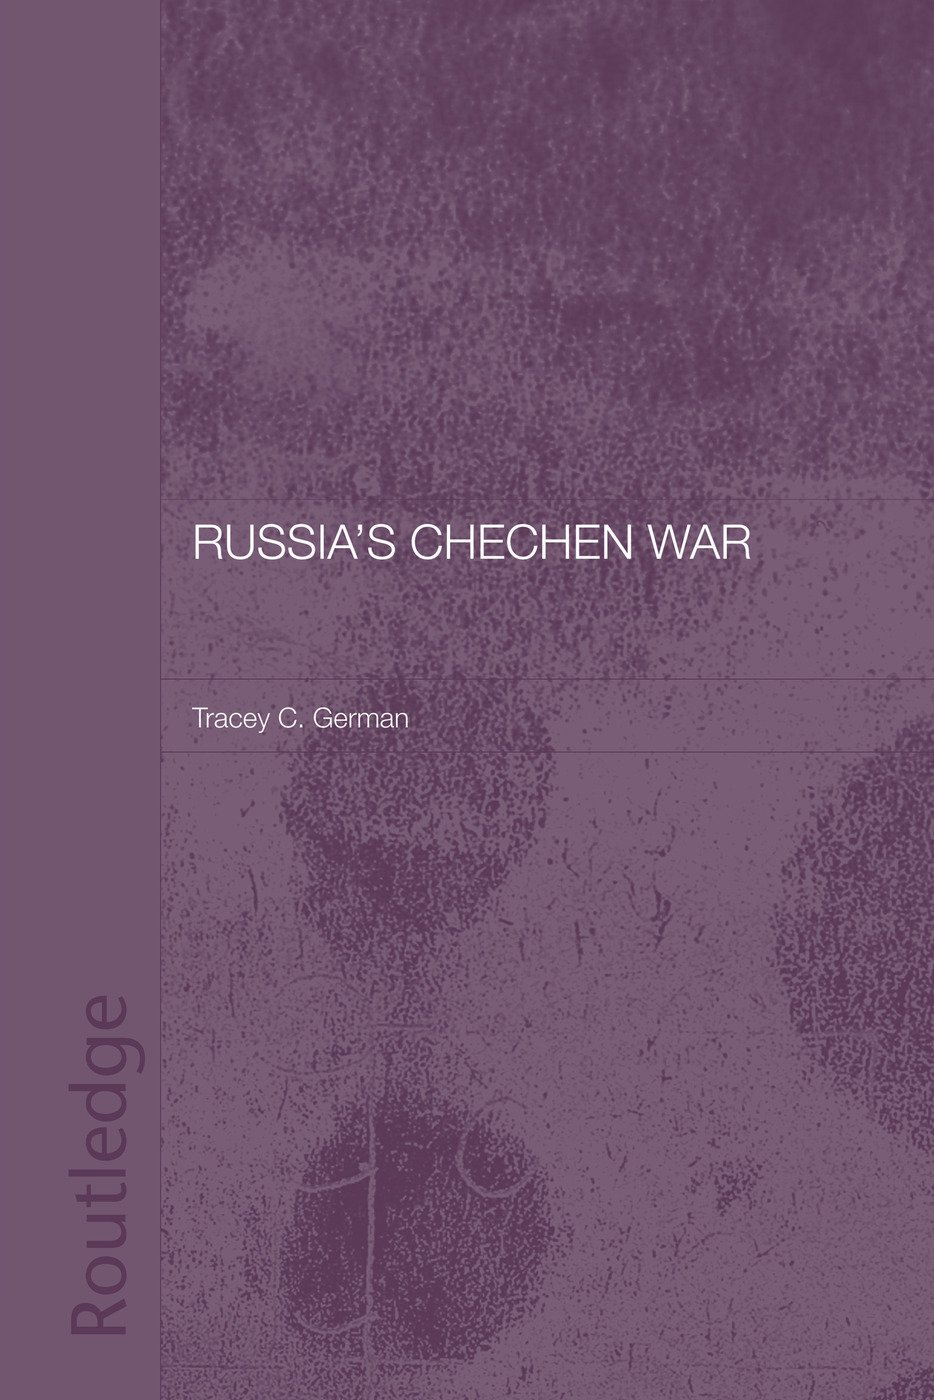 Russia's Chechen War